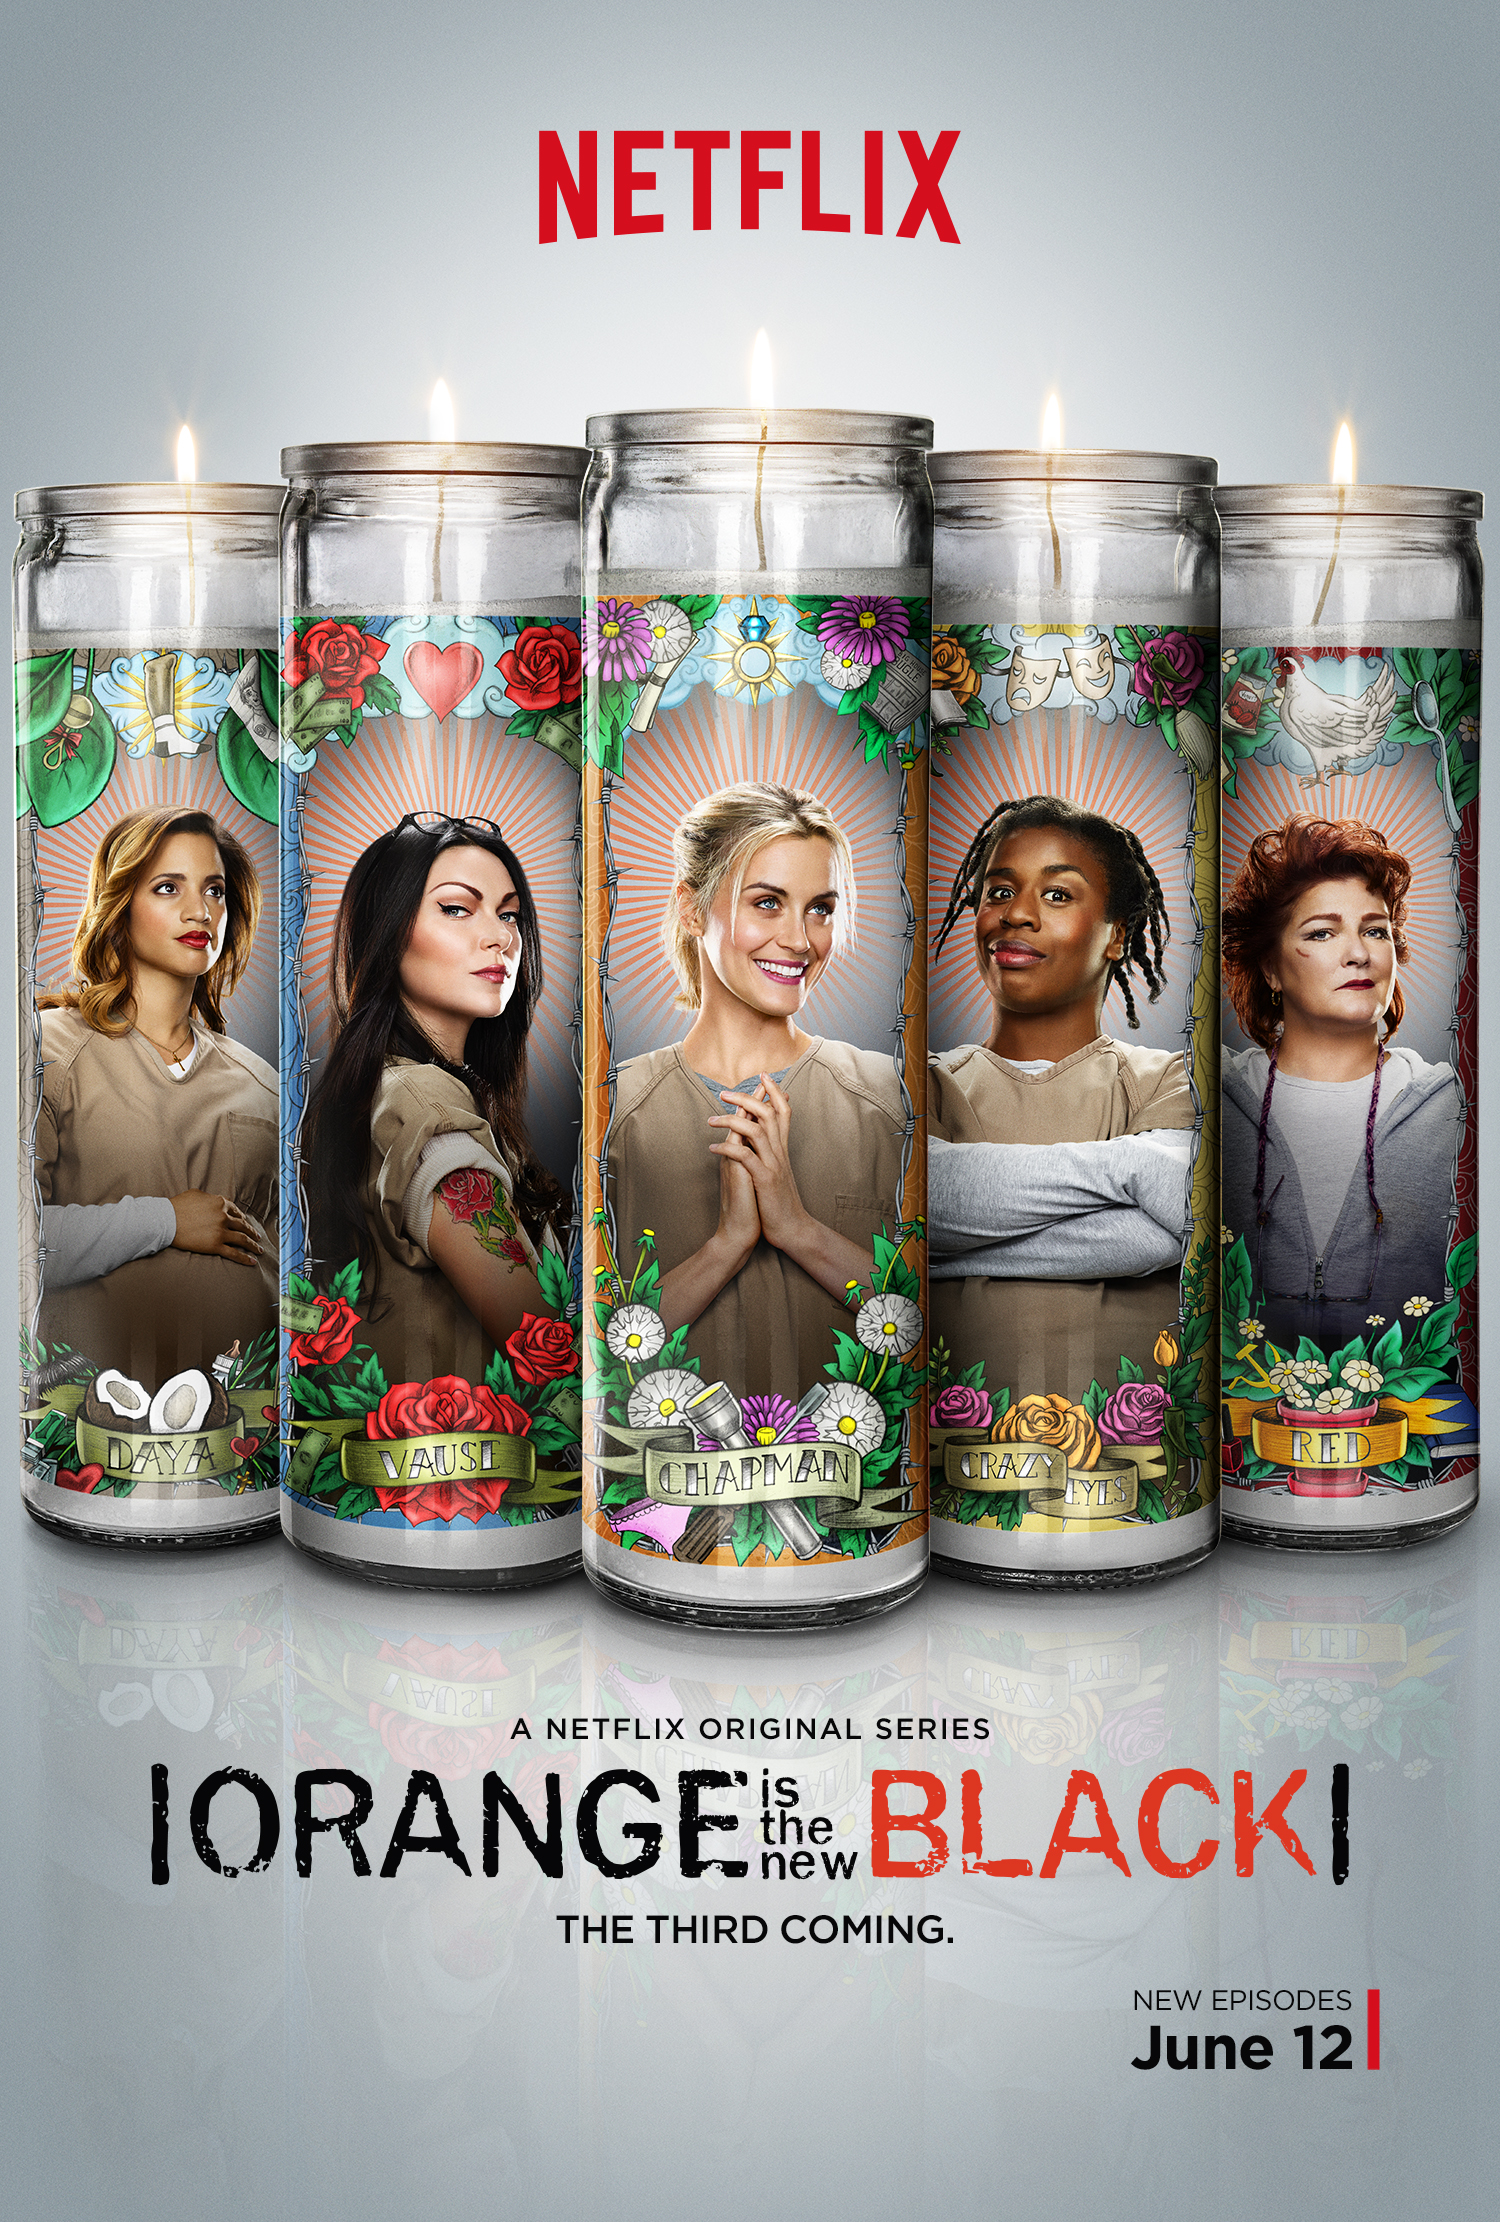 Orange Is the New Black, OITNB